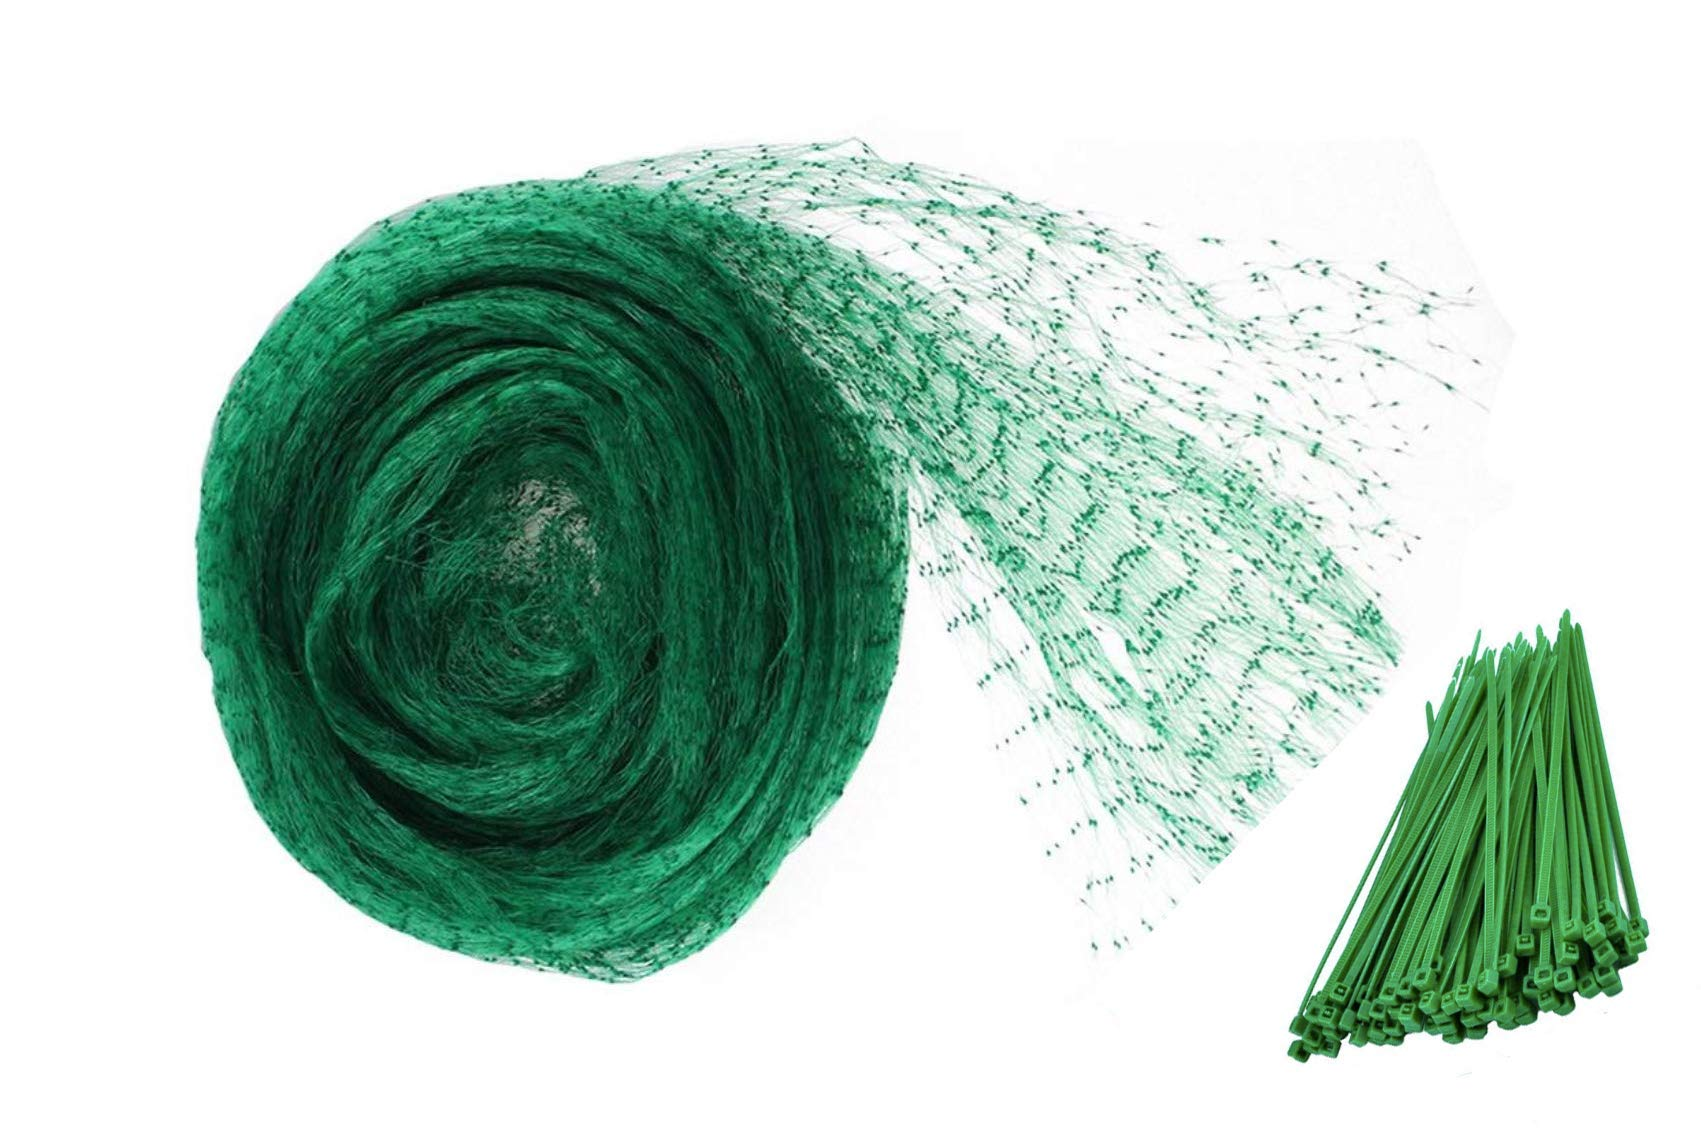 LAVZAN 26Ftx33Ft Green Anti-Bird Netting With 100 Pcs Nylon Cable Ties Protect Plants Fruit Trees Vegetables Flowers Seedlings from Birds Rodents Deer